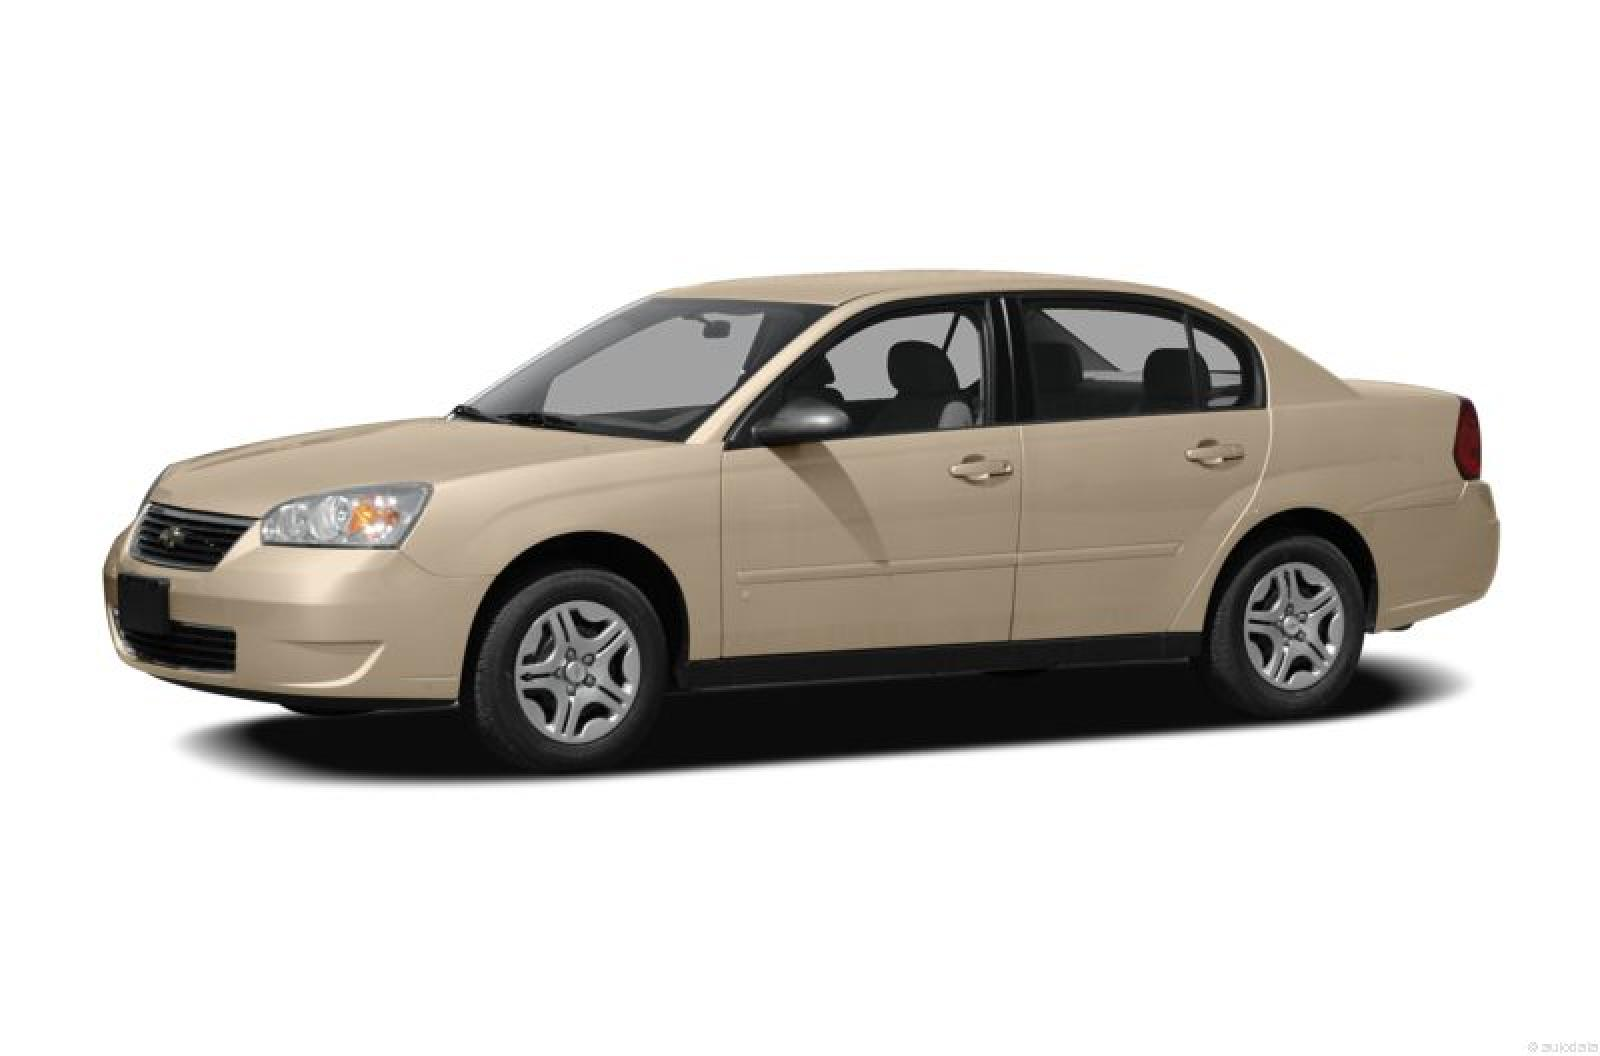 2008 chevy malibu 2001 nissan pathfinder thermostat diagram chevrolet classic information and photos